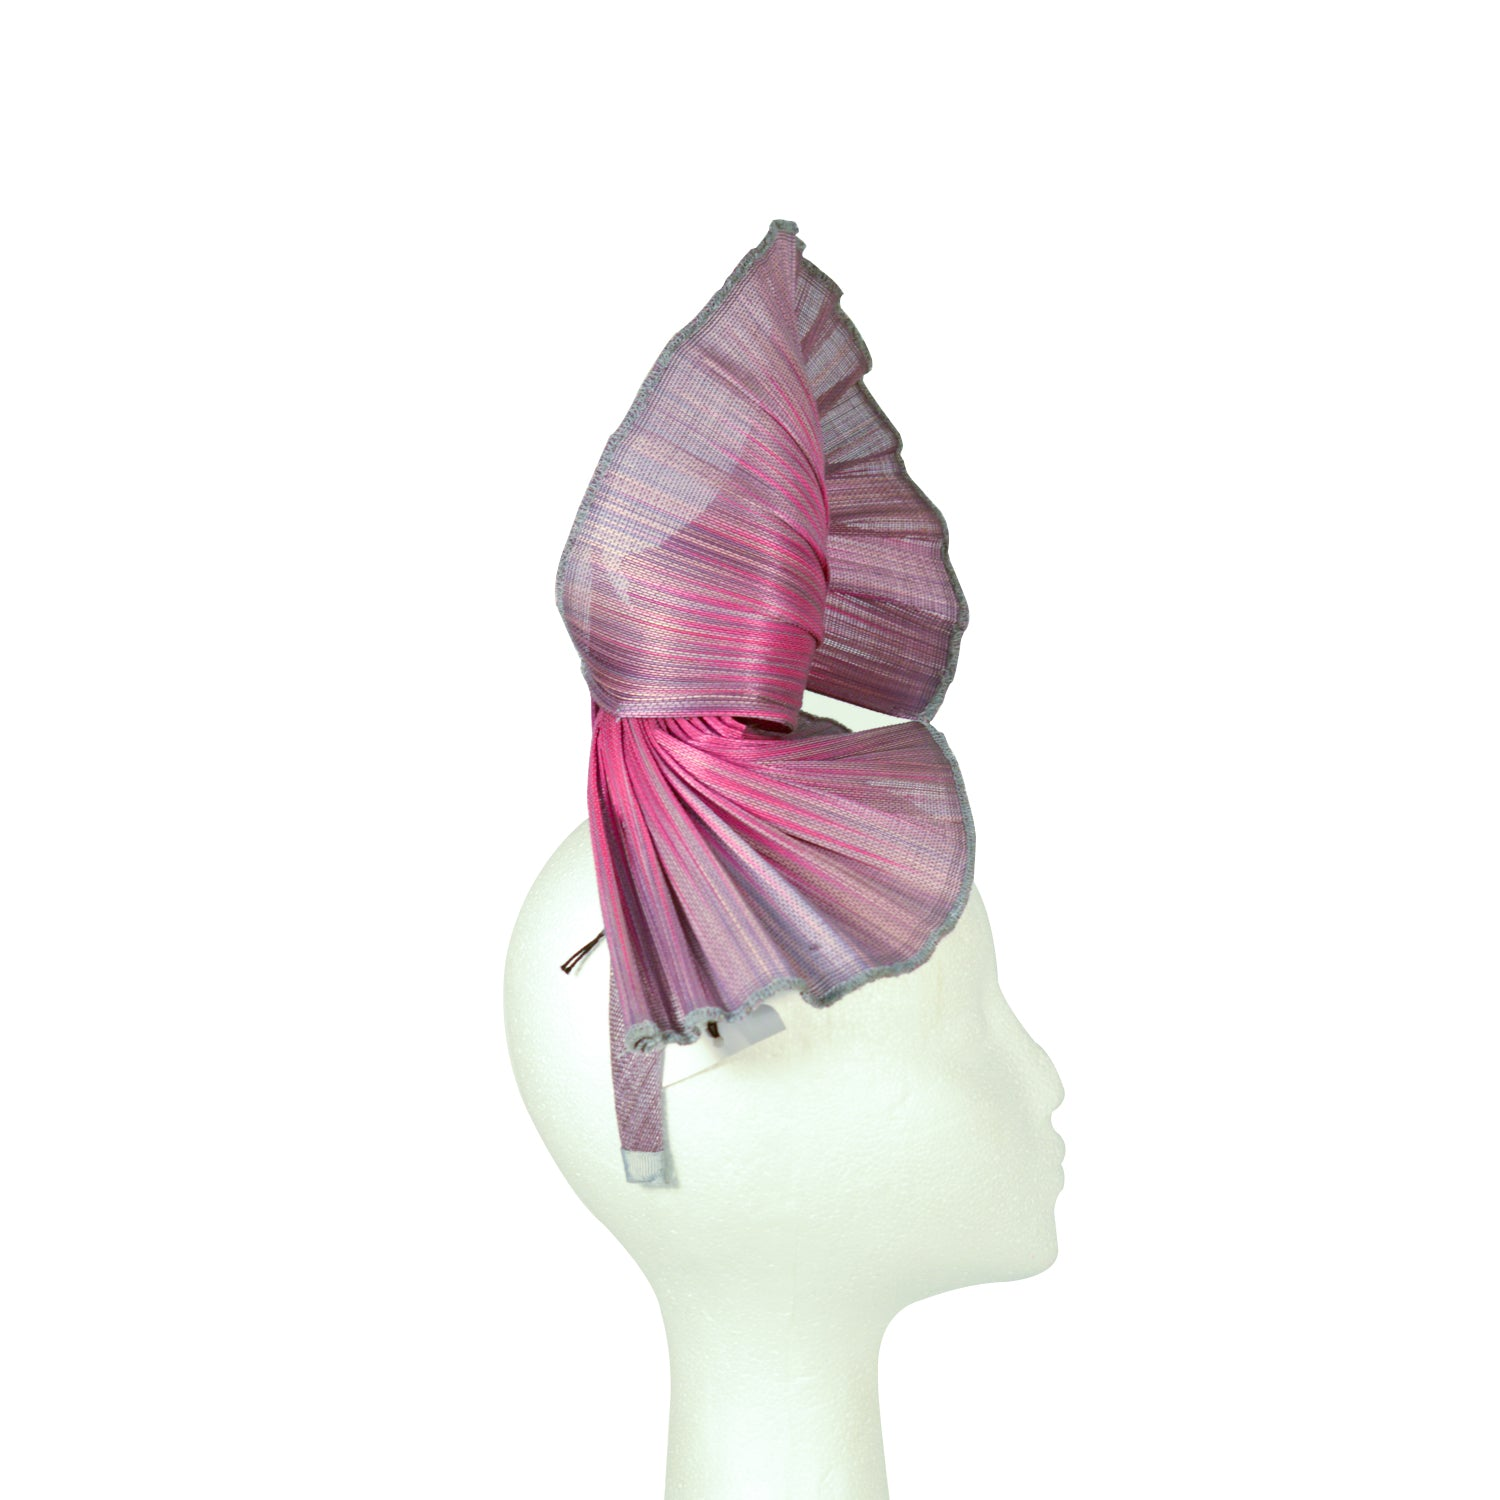 Grey and hot pink abacus straw fan knot style fascinator